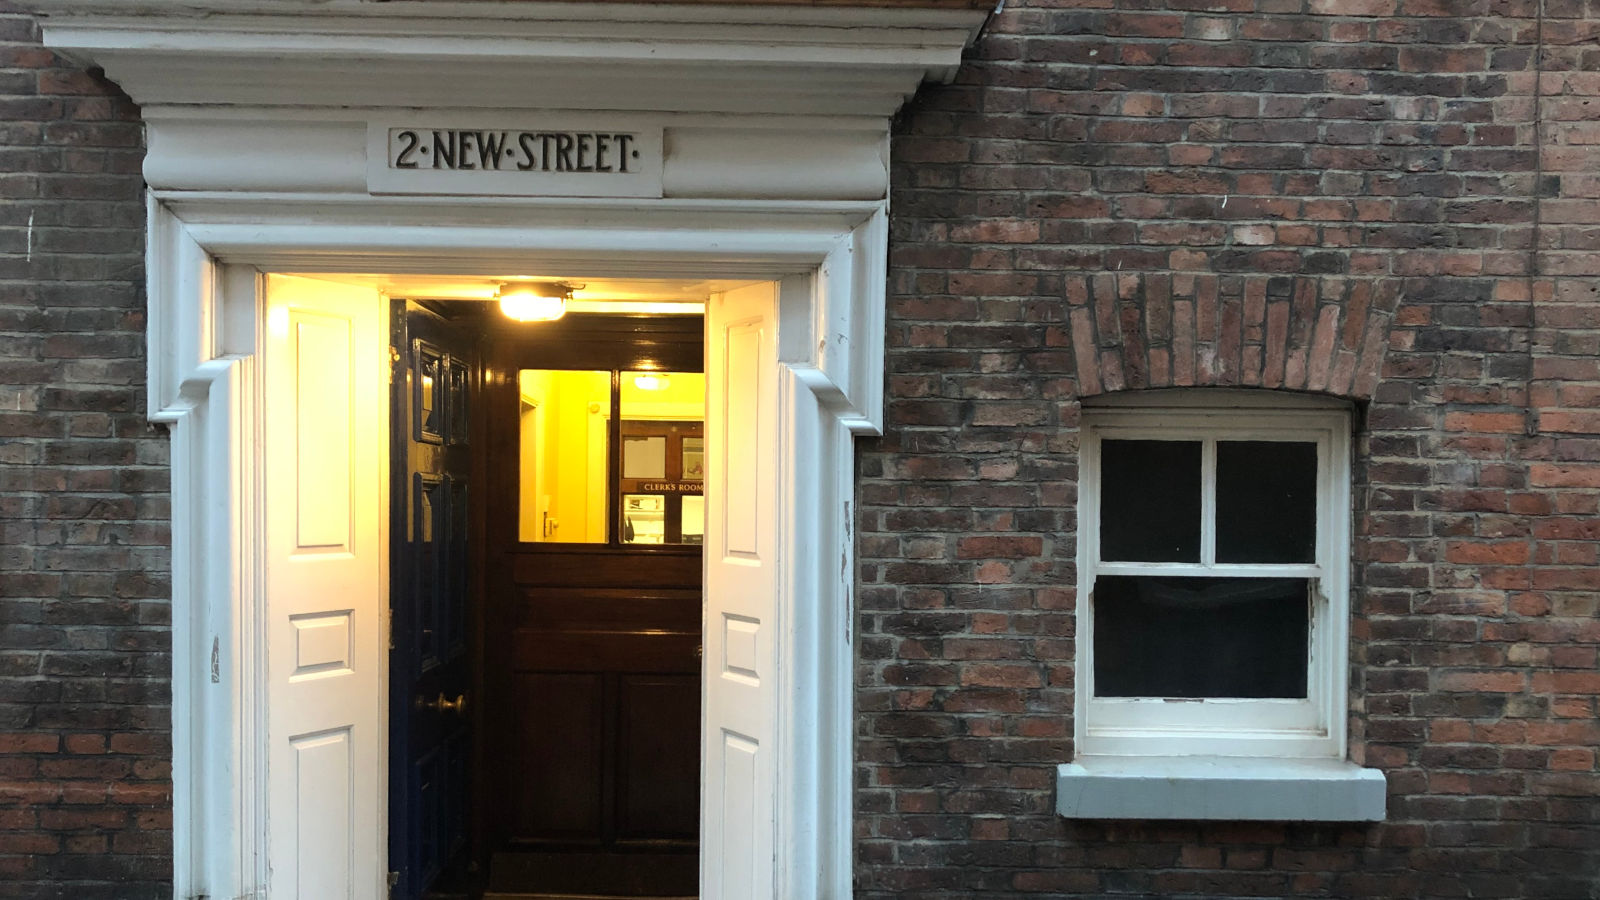 Leicester Greyfriars Heritage Initiative - Restoration - 2 New Street Chambers